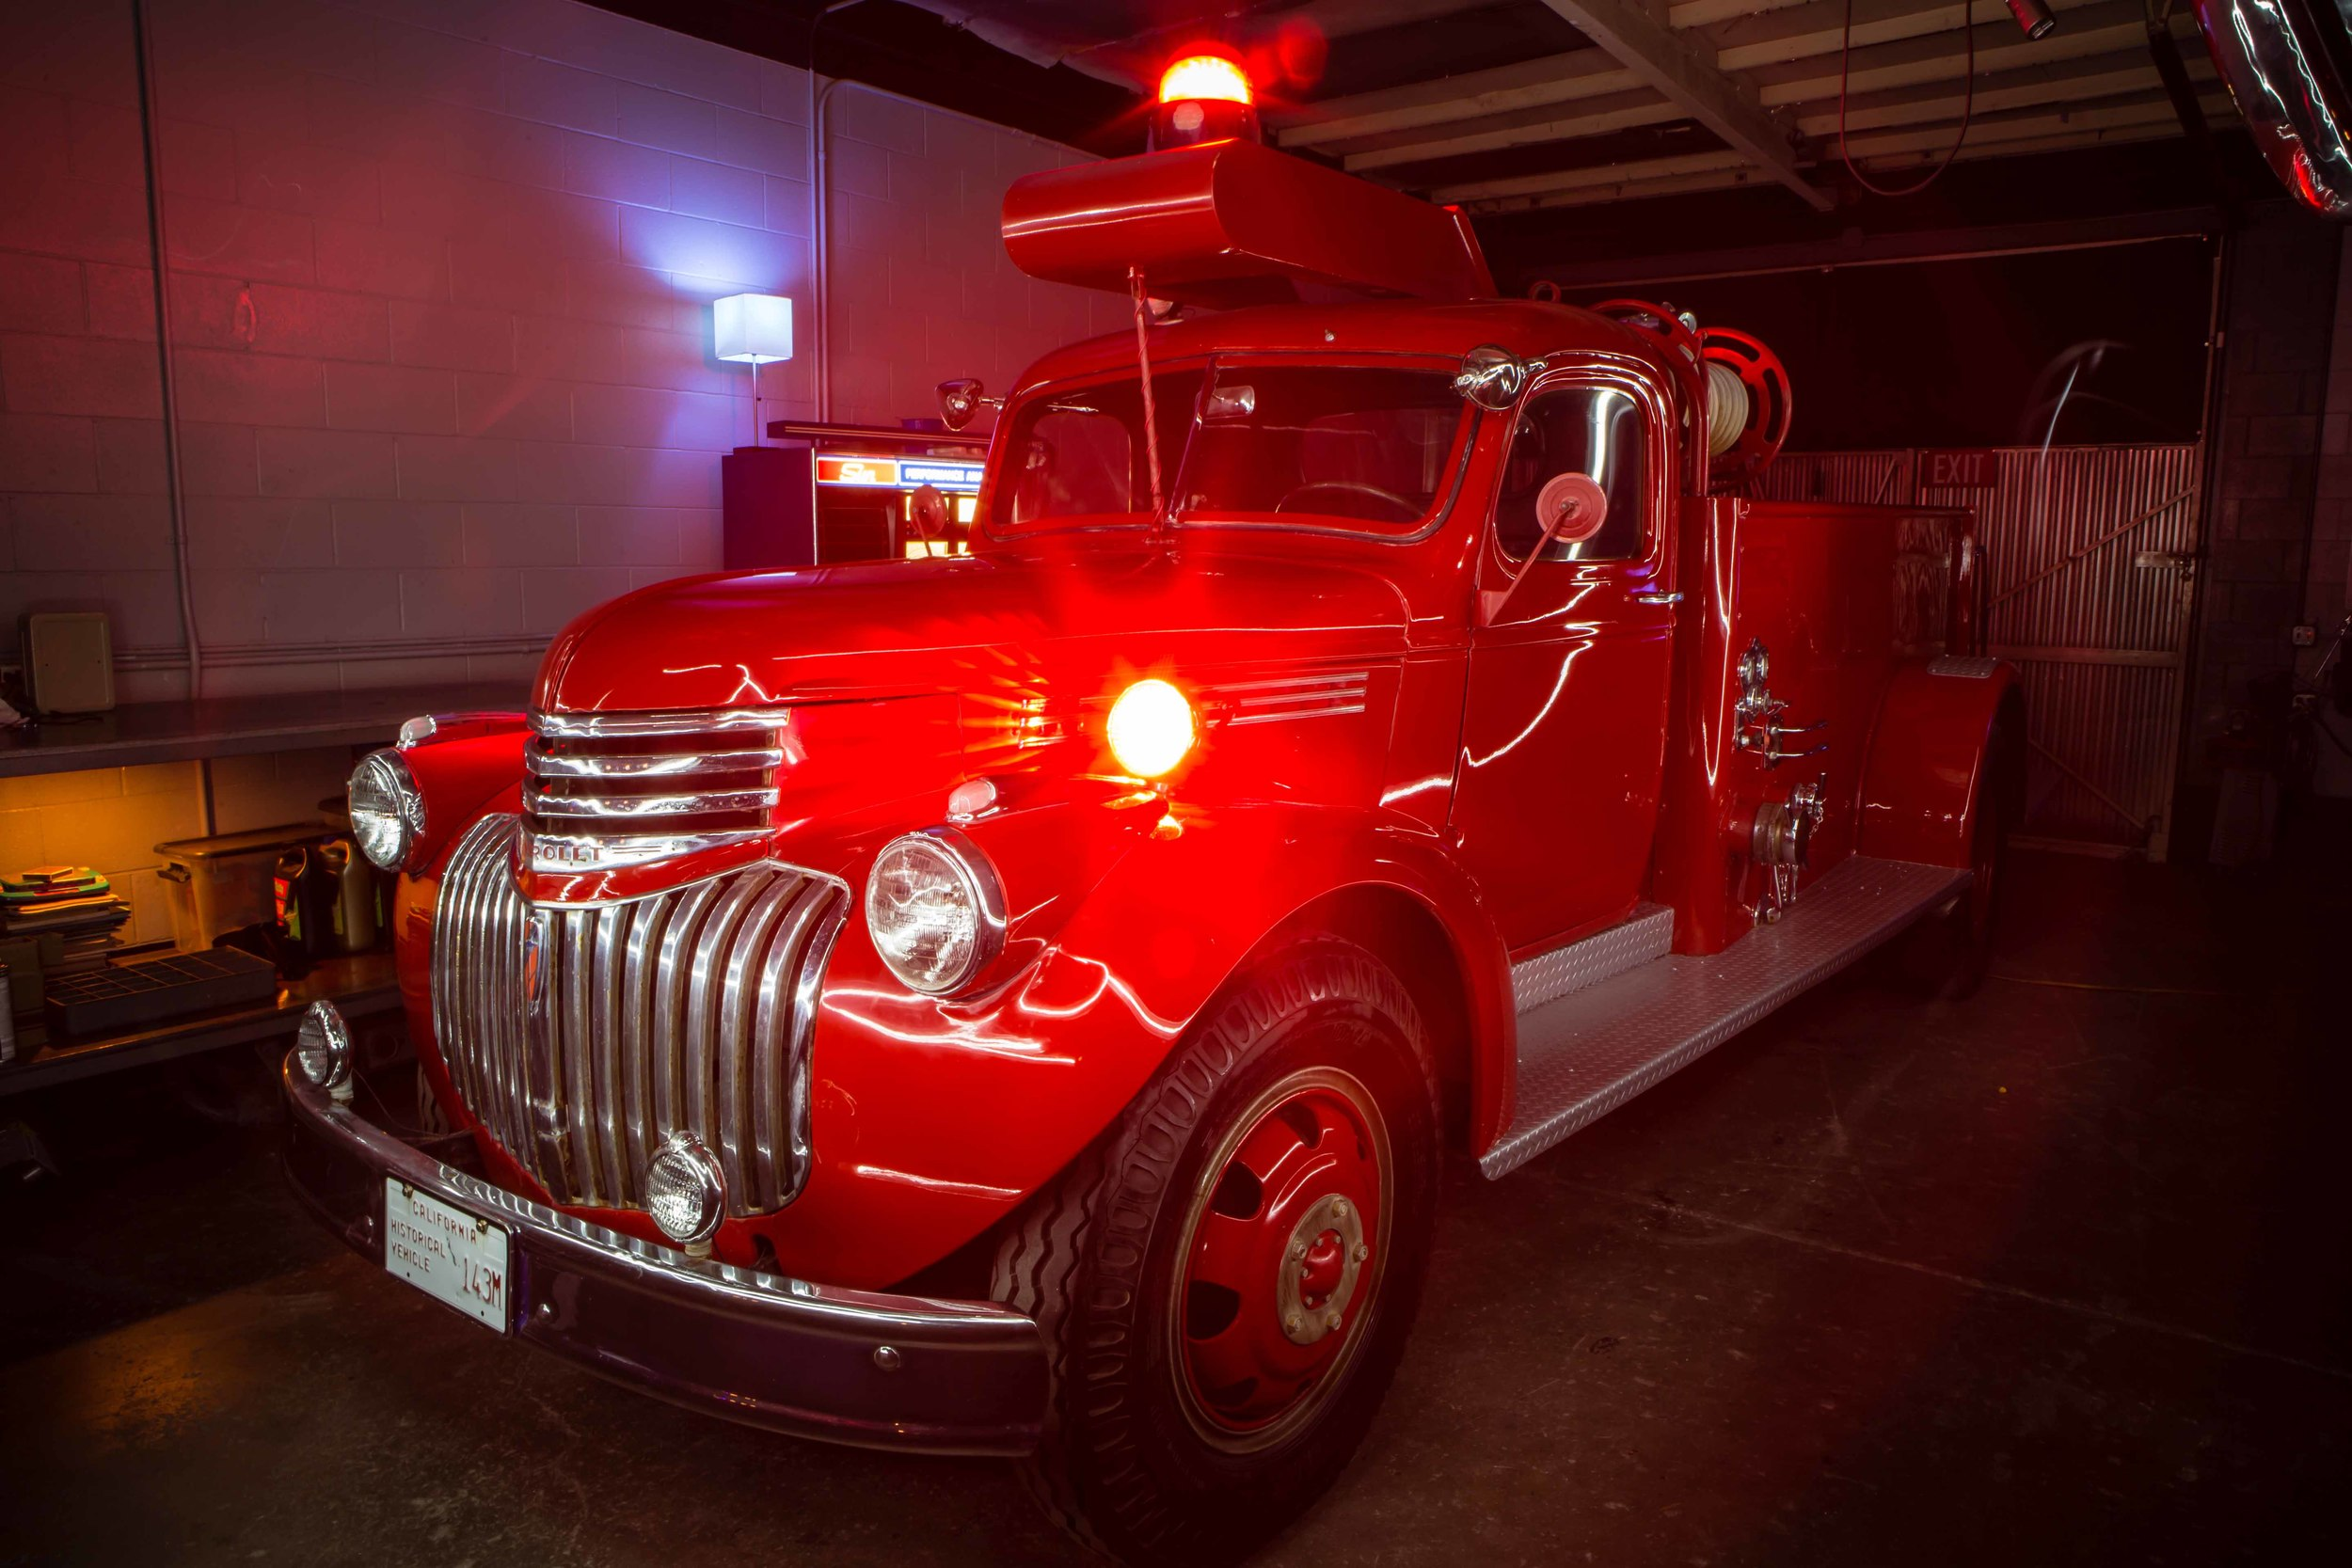 Anaheim Rod and Custom Fire Truck Project-28.jpg